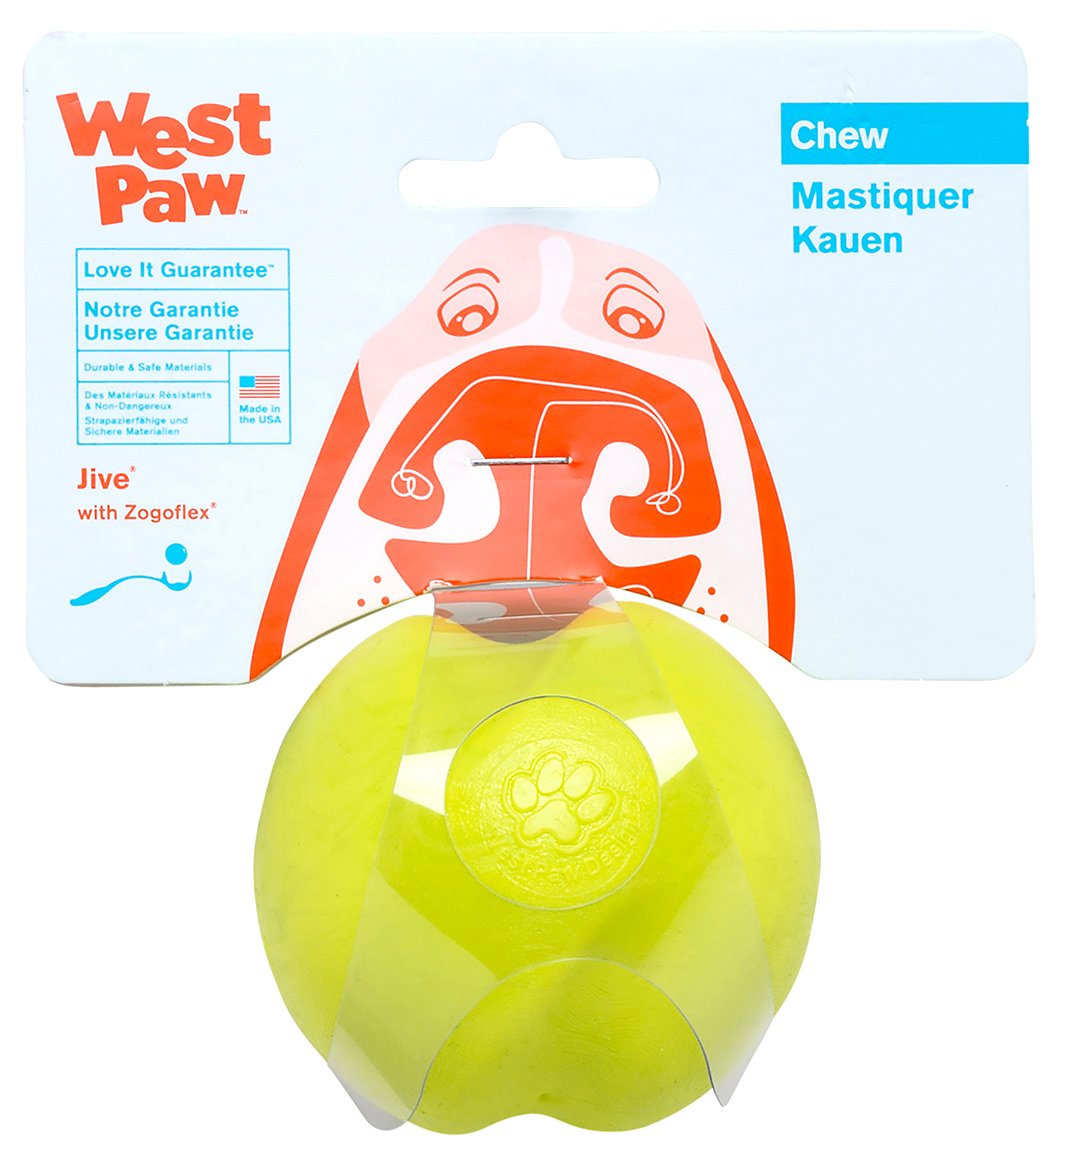 West Paw Zogoflex Jive Durable Nearly Indestructible Dog Ball Chew-Fetch-Play Dog Toy, 100% Guaranteed Tough, It Floats!, Made in USA, Large 3-1/4-Inch, Granny Smith